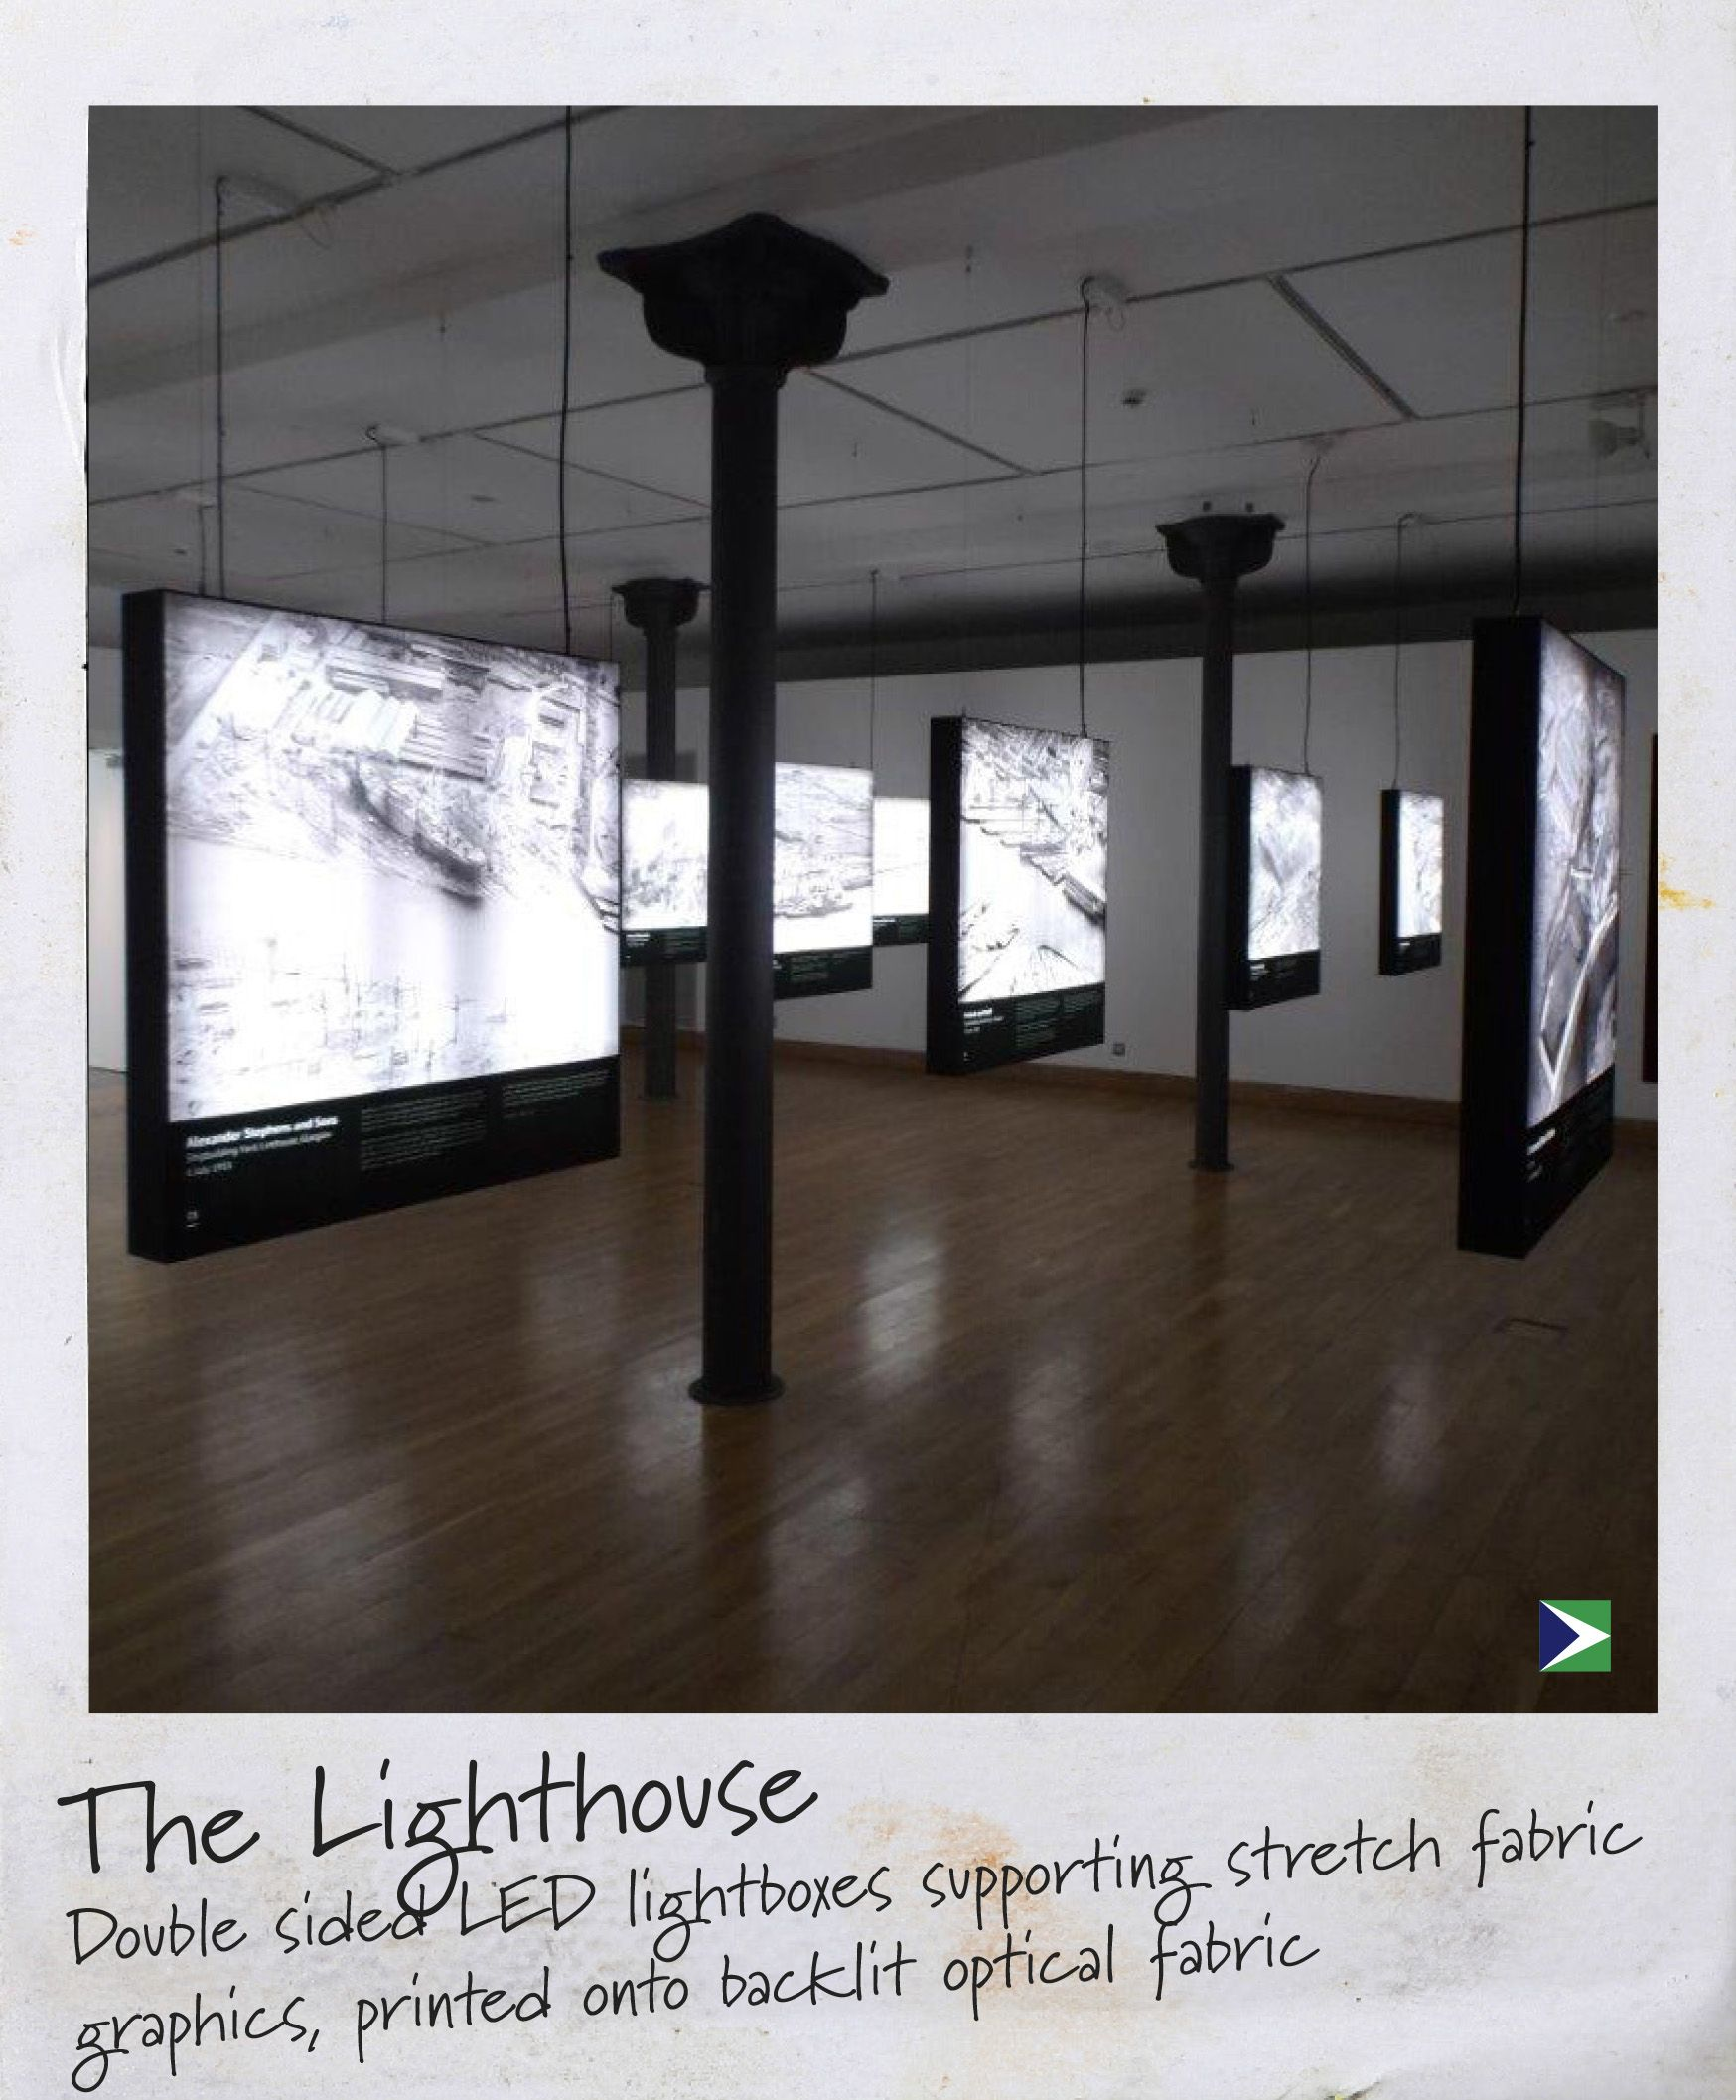 Stretch Fabric Exhibition Stands : The lighthouse led lightboxes supporting stretch fabric